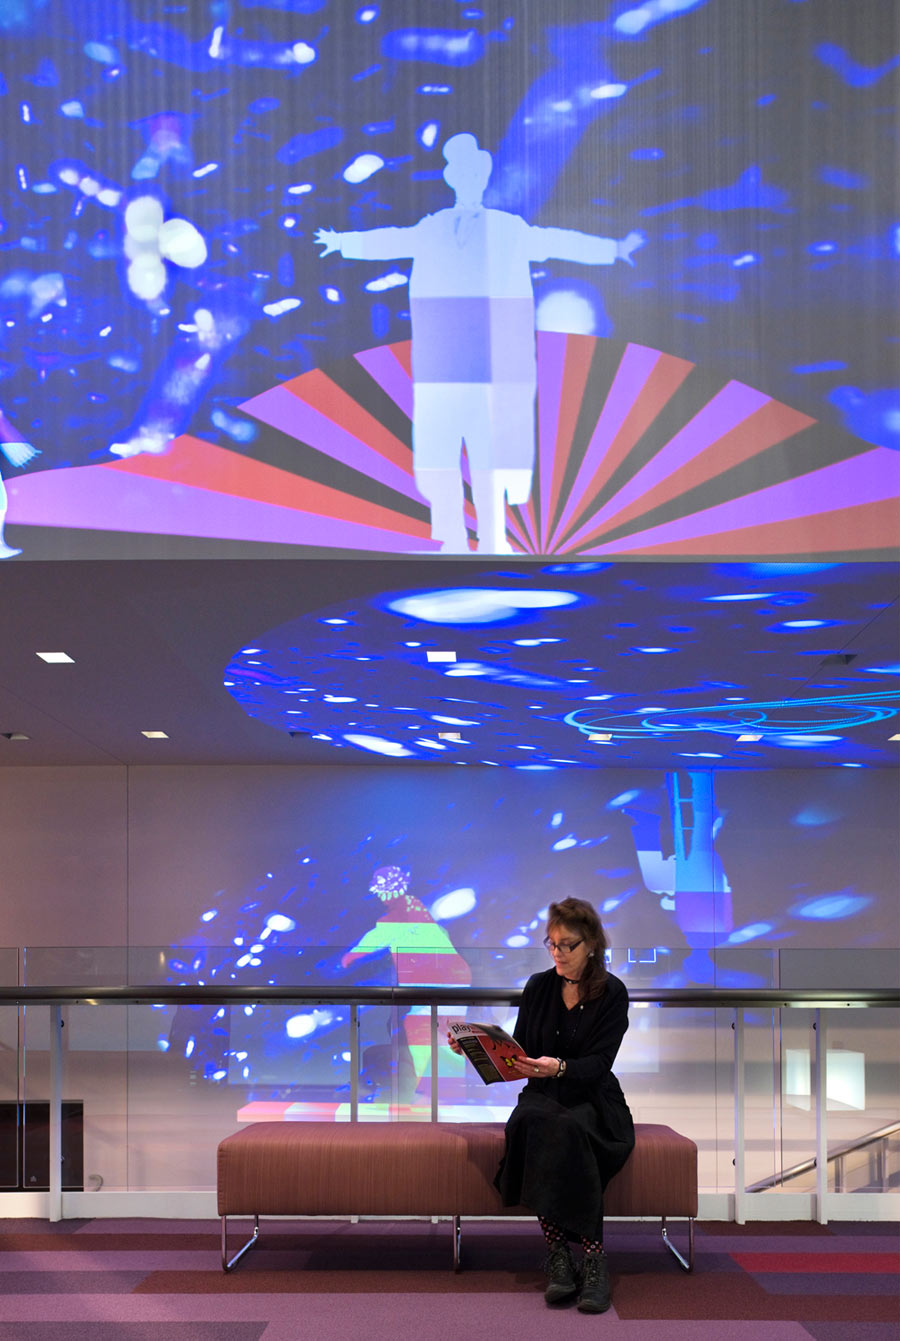 <p>Video art projection on the walls activates the lobby. <br><small>&copy; Peter Aaron/OTTO</small></p>